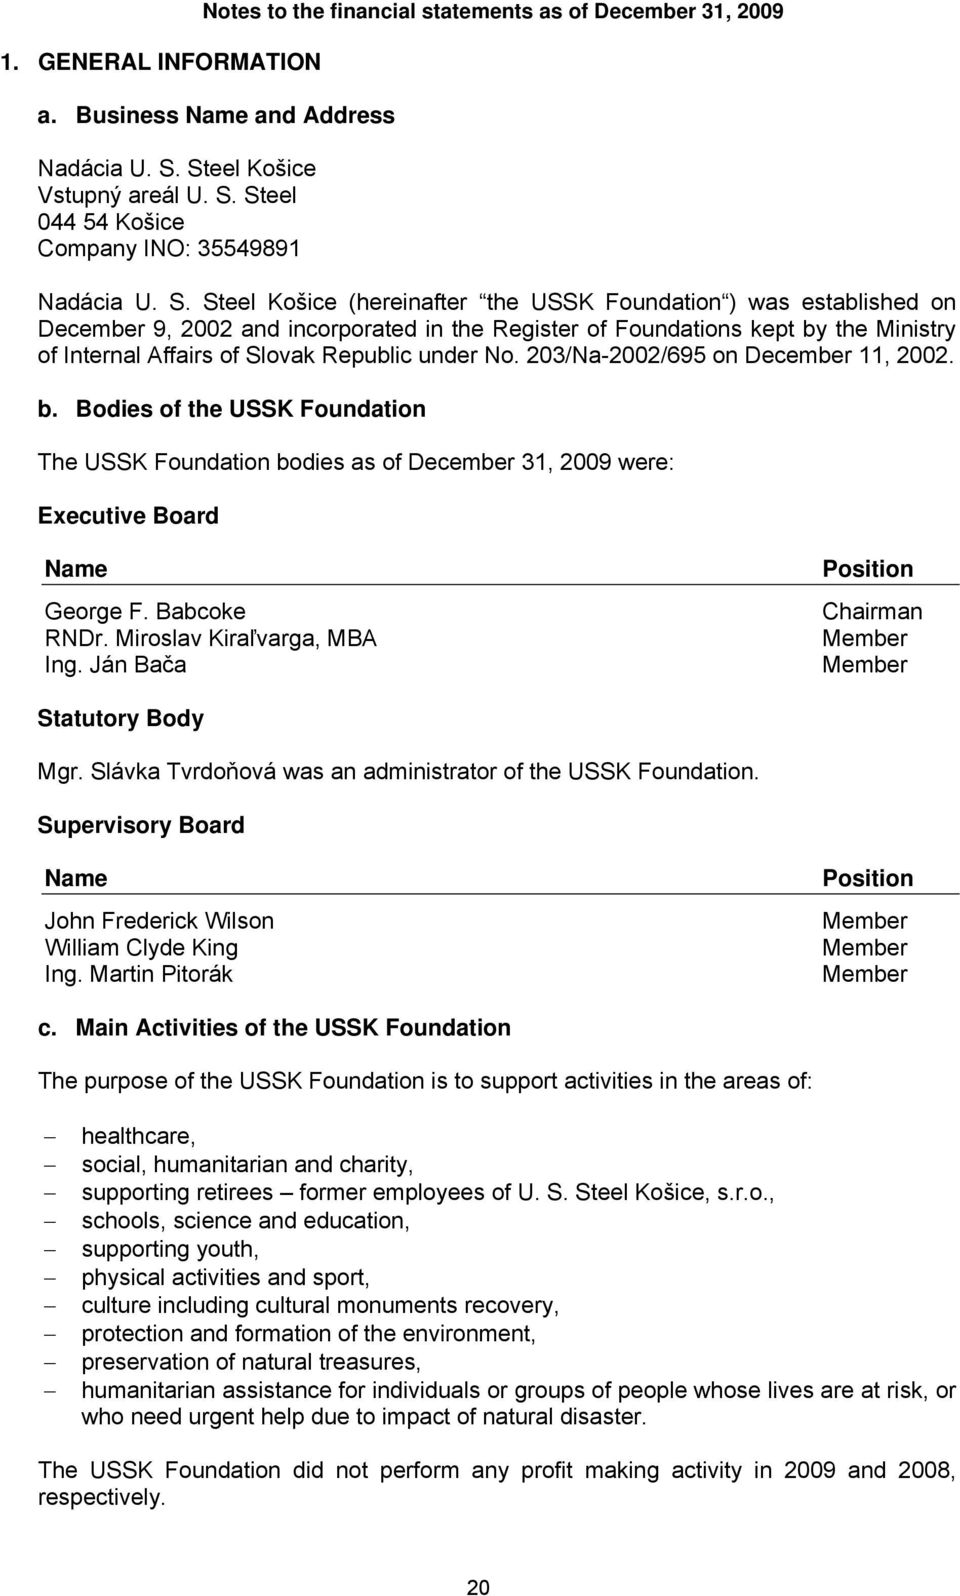 under 203/Na-2002/695 on December 11, 2002. b. Bodies of the USSK Foundation The USSK Foundation bodies as of December 31, 2009 were: Executive Board Name George F. Babcoke RNDr.